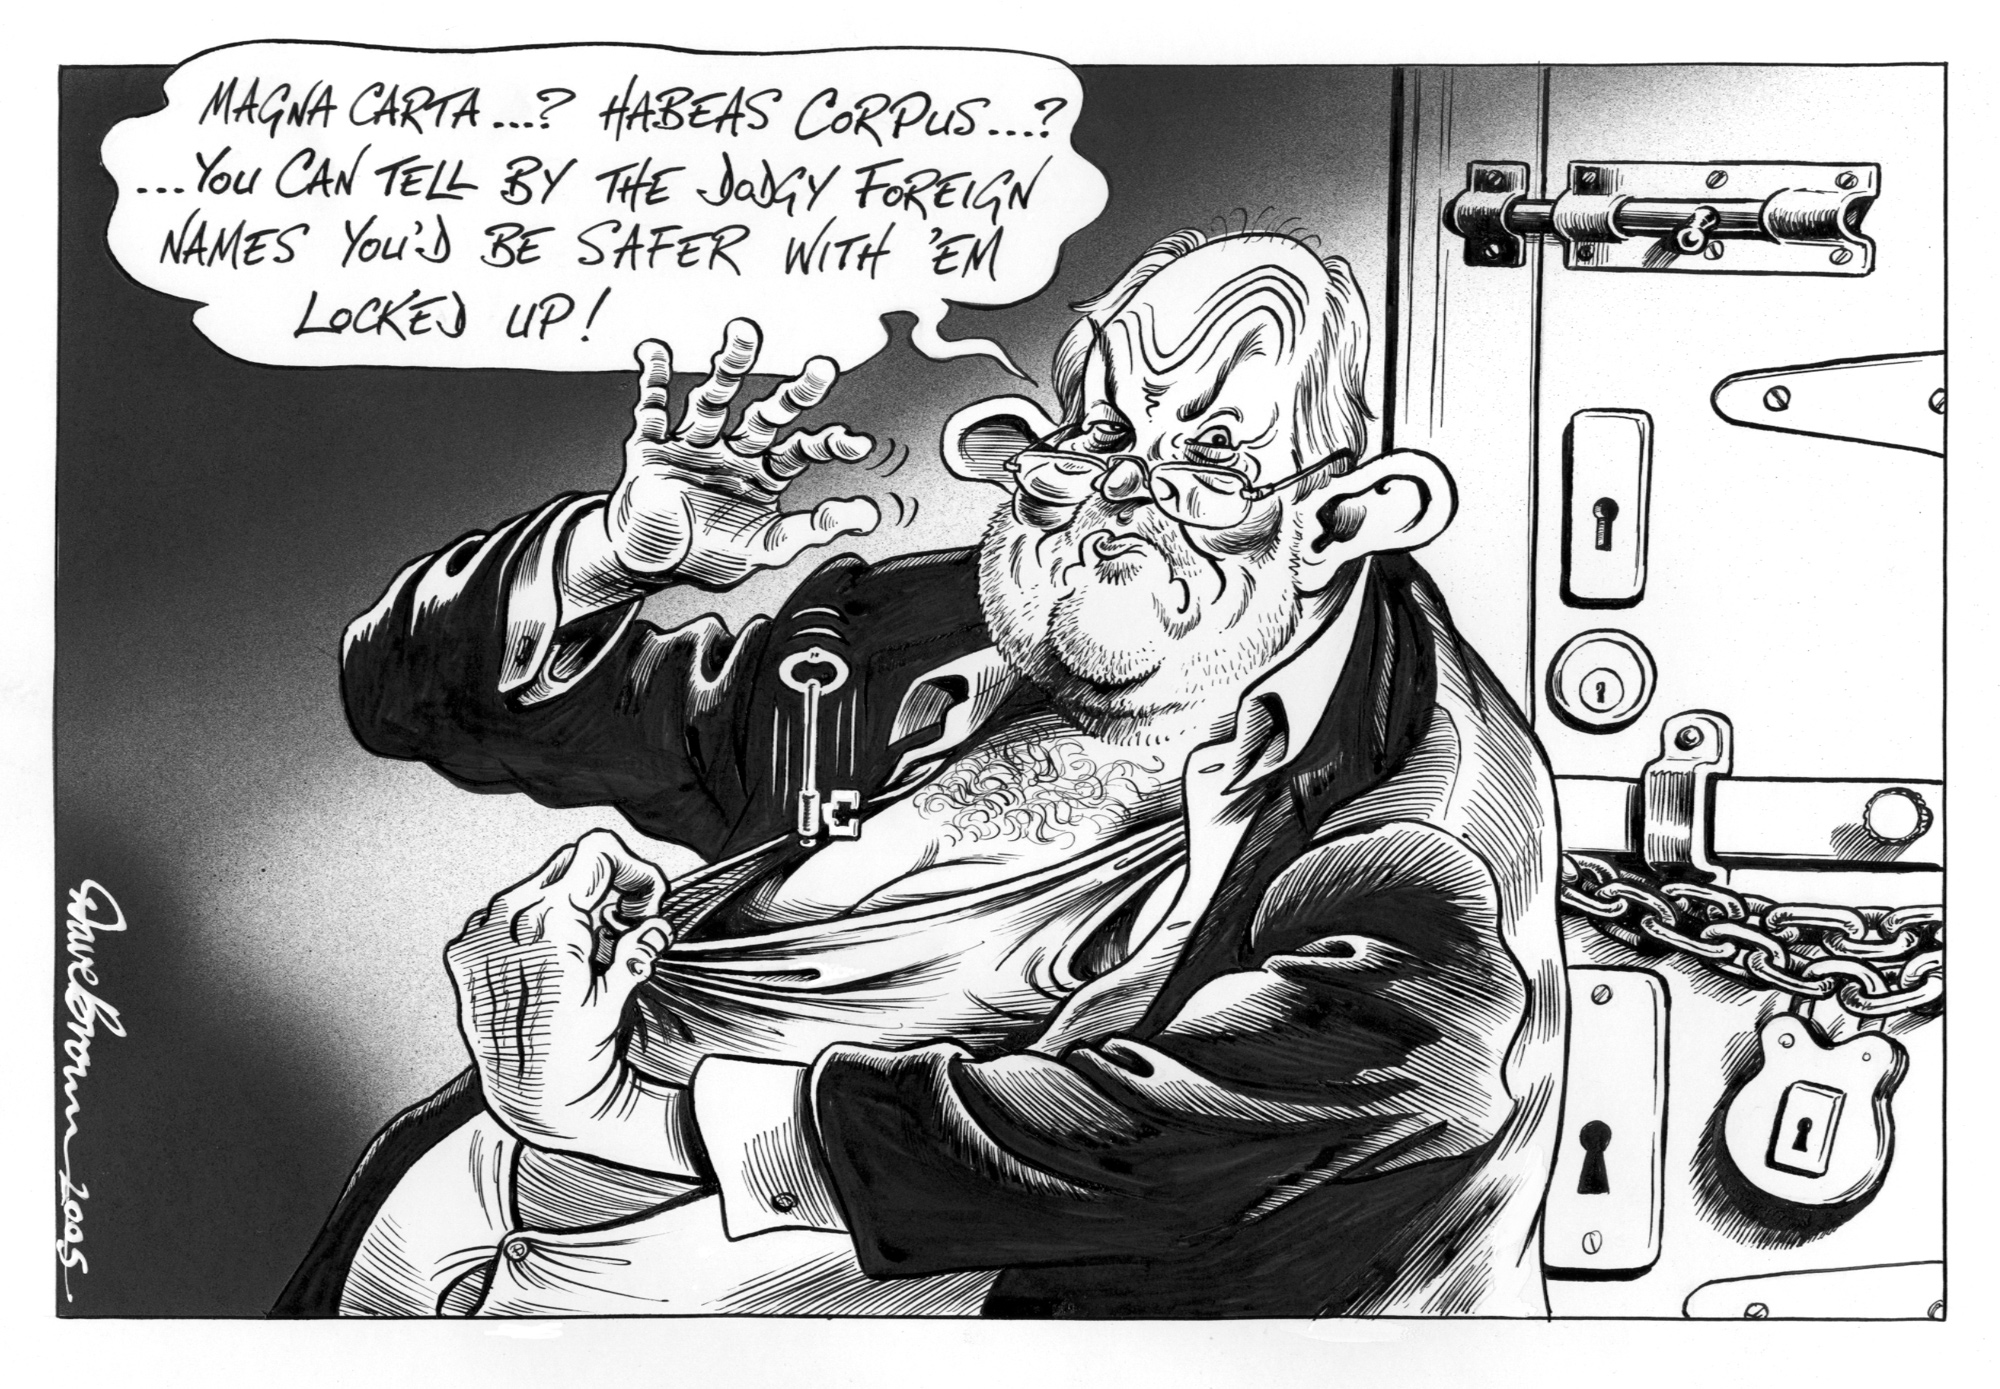 Cartoon entitled 'Magna Carta? Habeas Corpus?' and featuring Charles Clarke